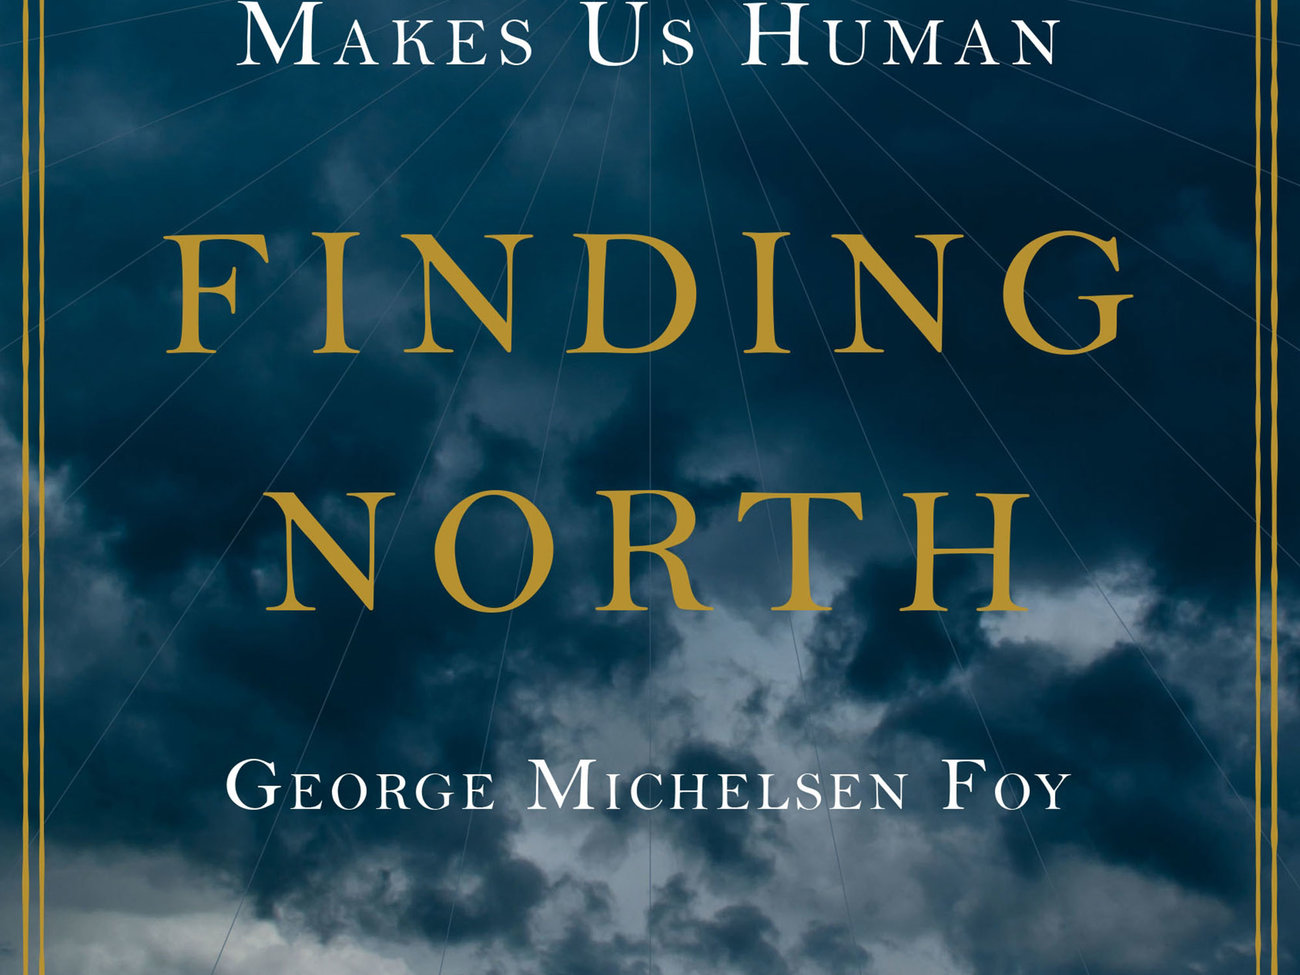 FINDING_NORTH-BOOK0416.jpg